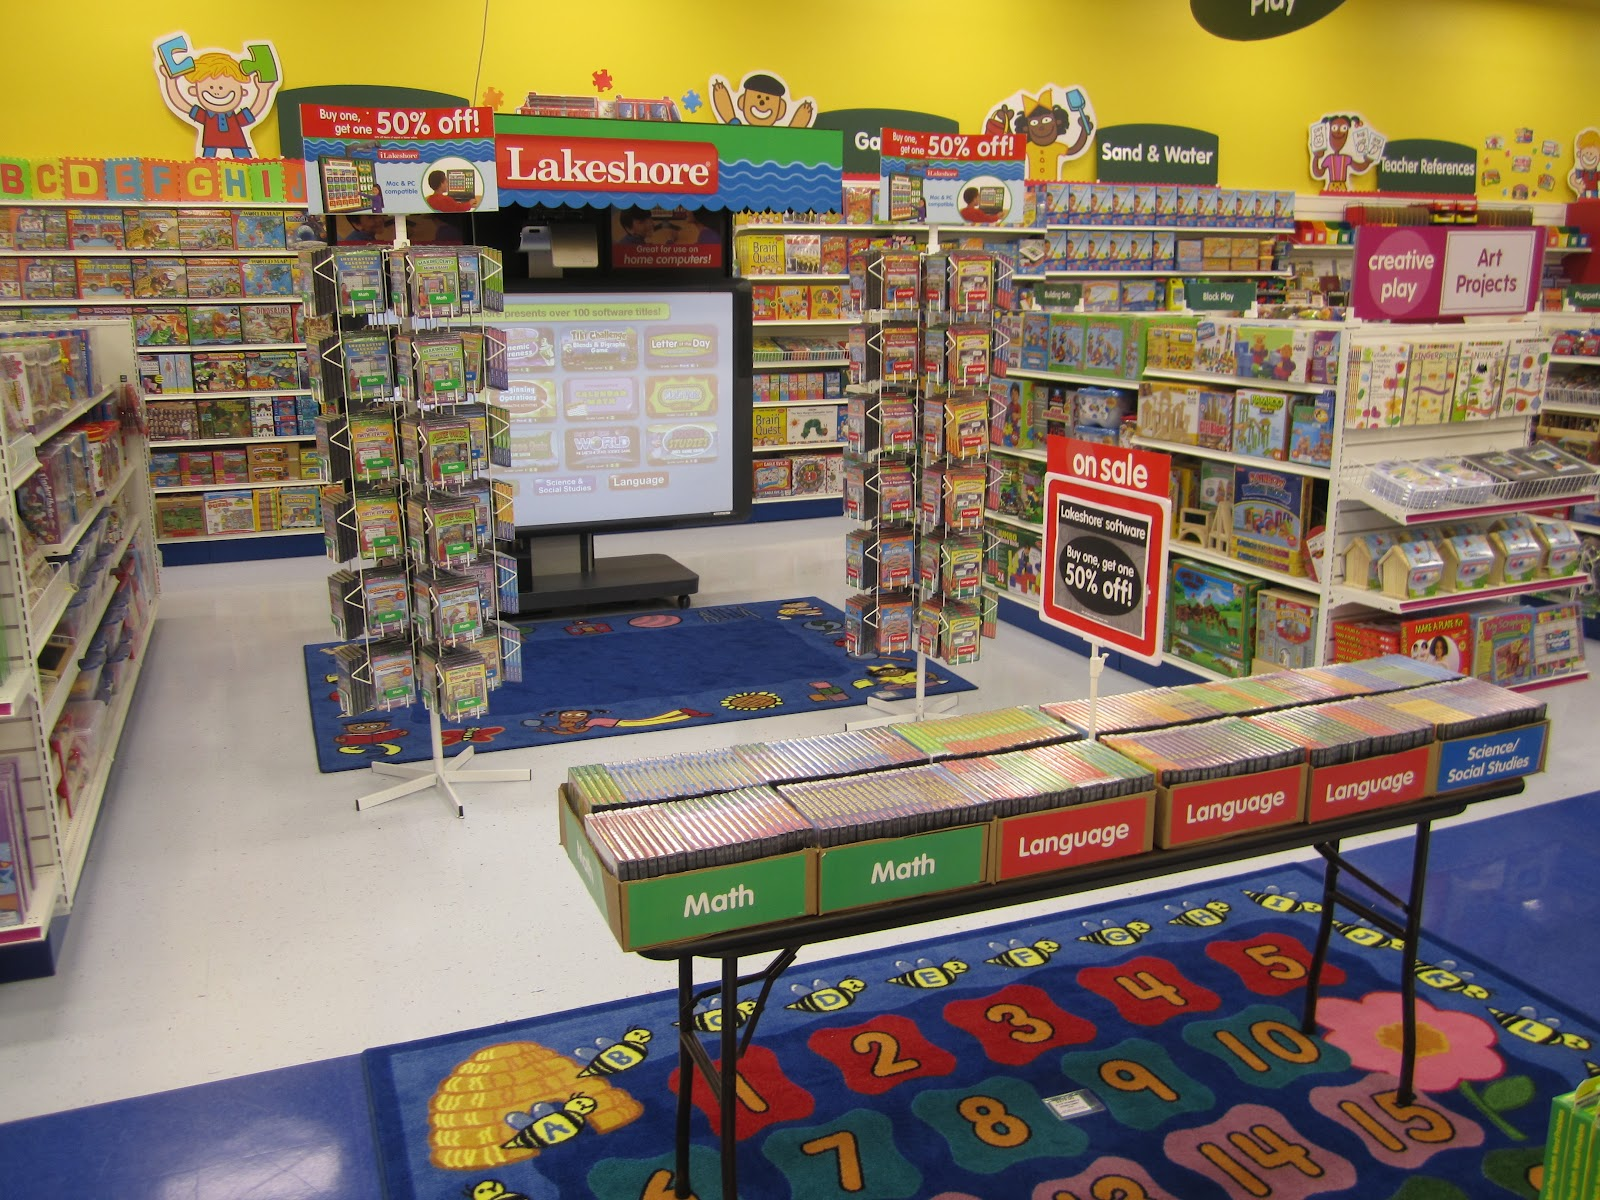 Lakeshore Learning Store creates innovative educational materials that spark young imaginations, instill a sense of wonder and foster a lifelong love of learning.